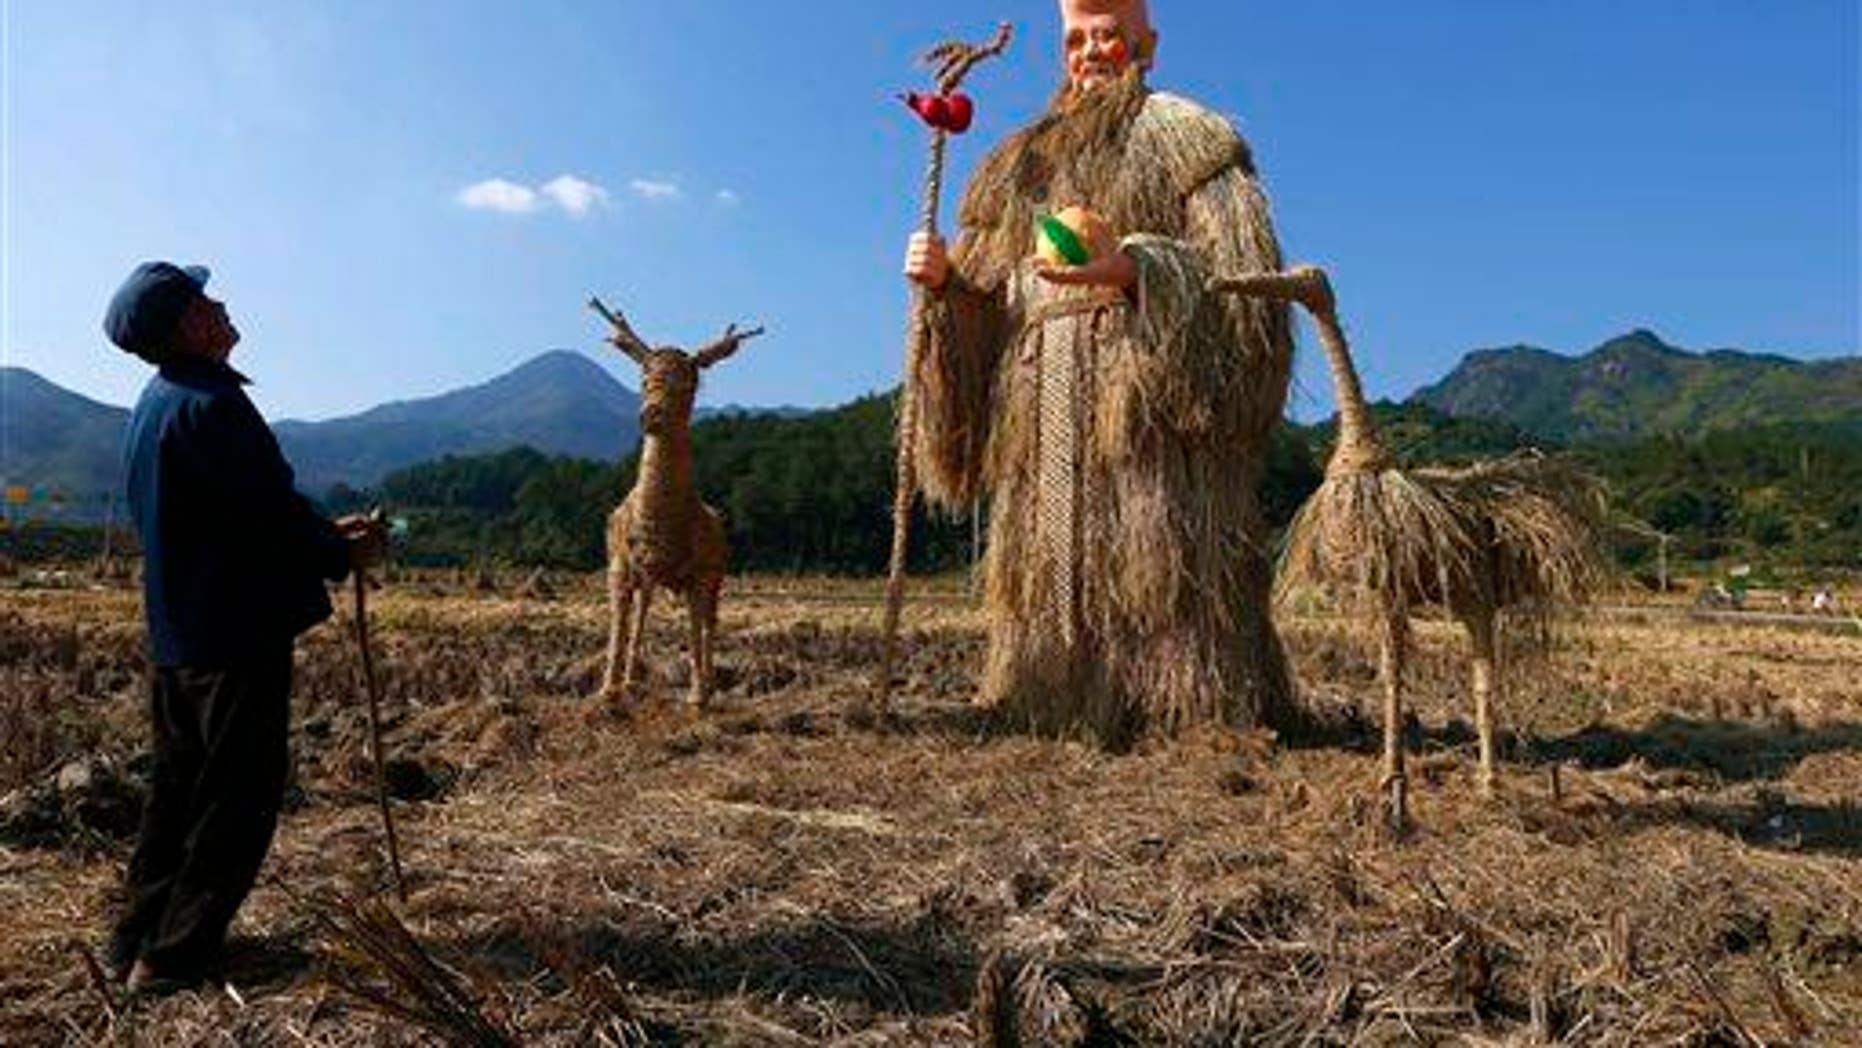 A farmer looks at scarecrows made in the image of a Chinese god in Yongjia county in China's Zhejiang province. Kawasaki disease has been shown to originate in yeast from Chinese fields.